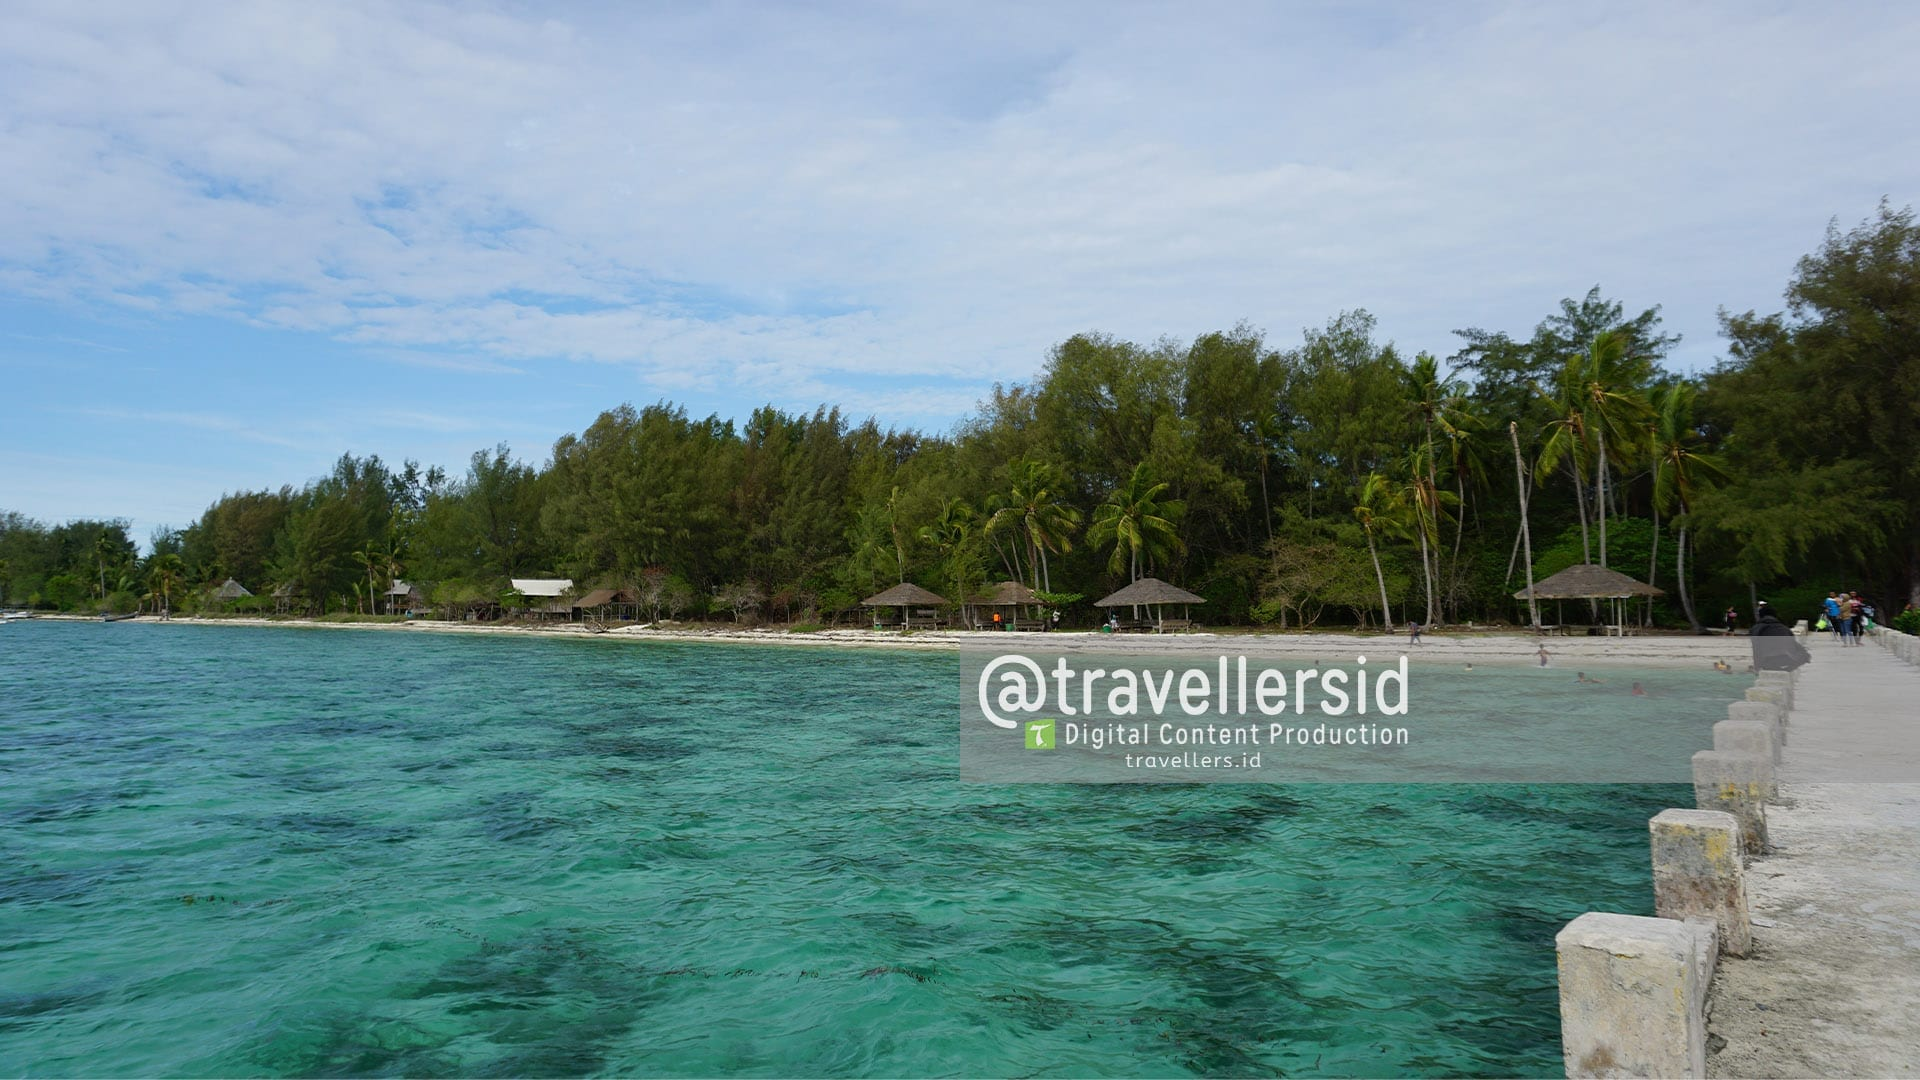 Hoga Island, Wakatobi Islands, Southeast Sulawesi, Indonesia